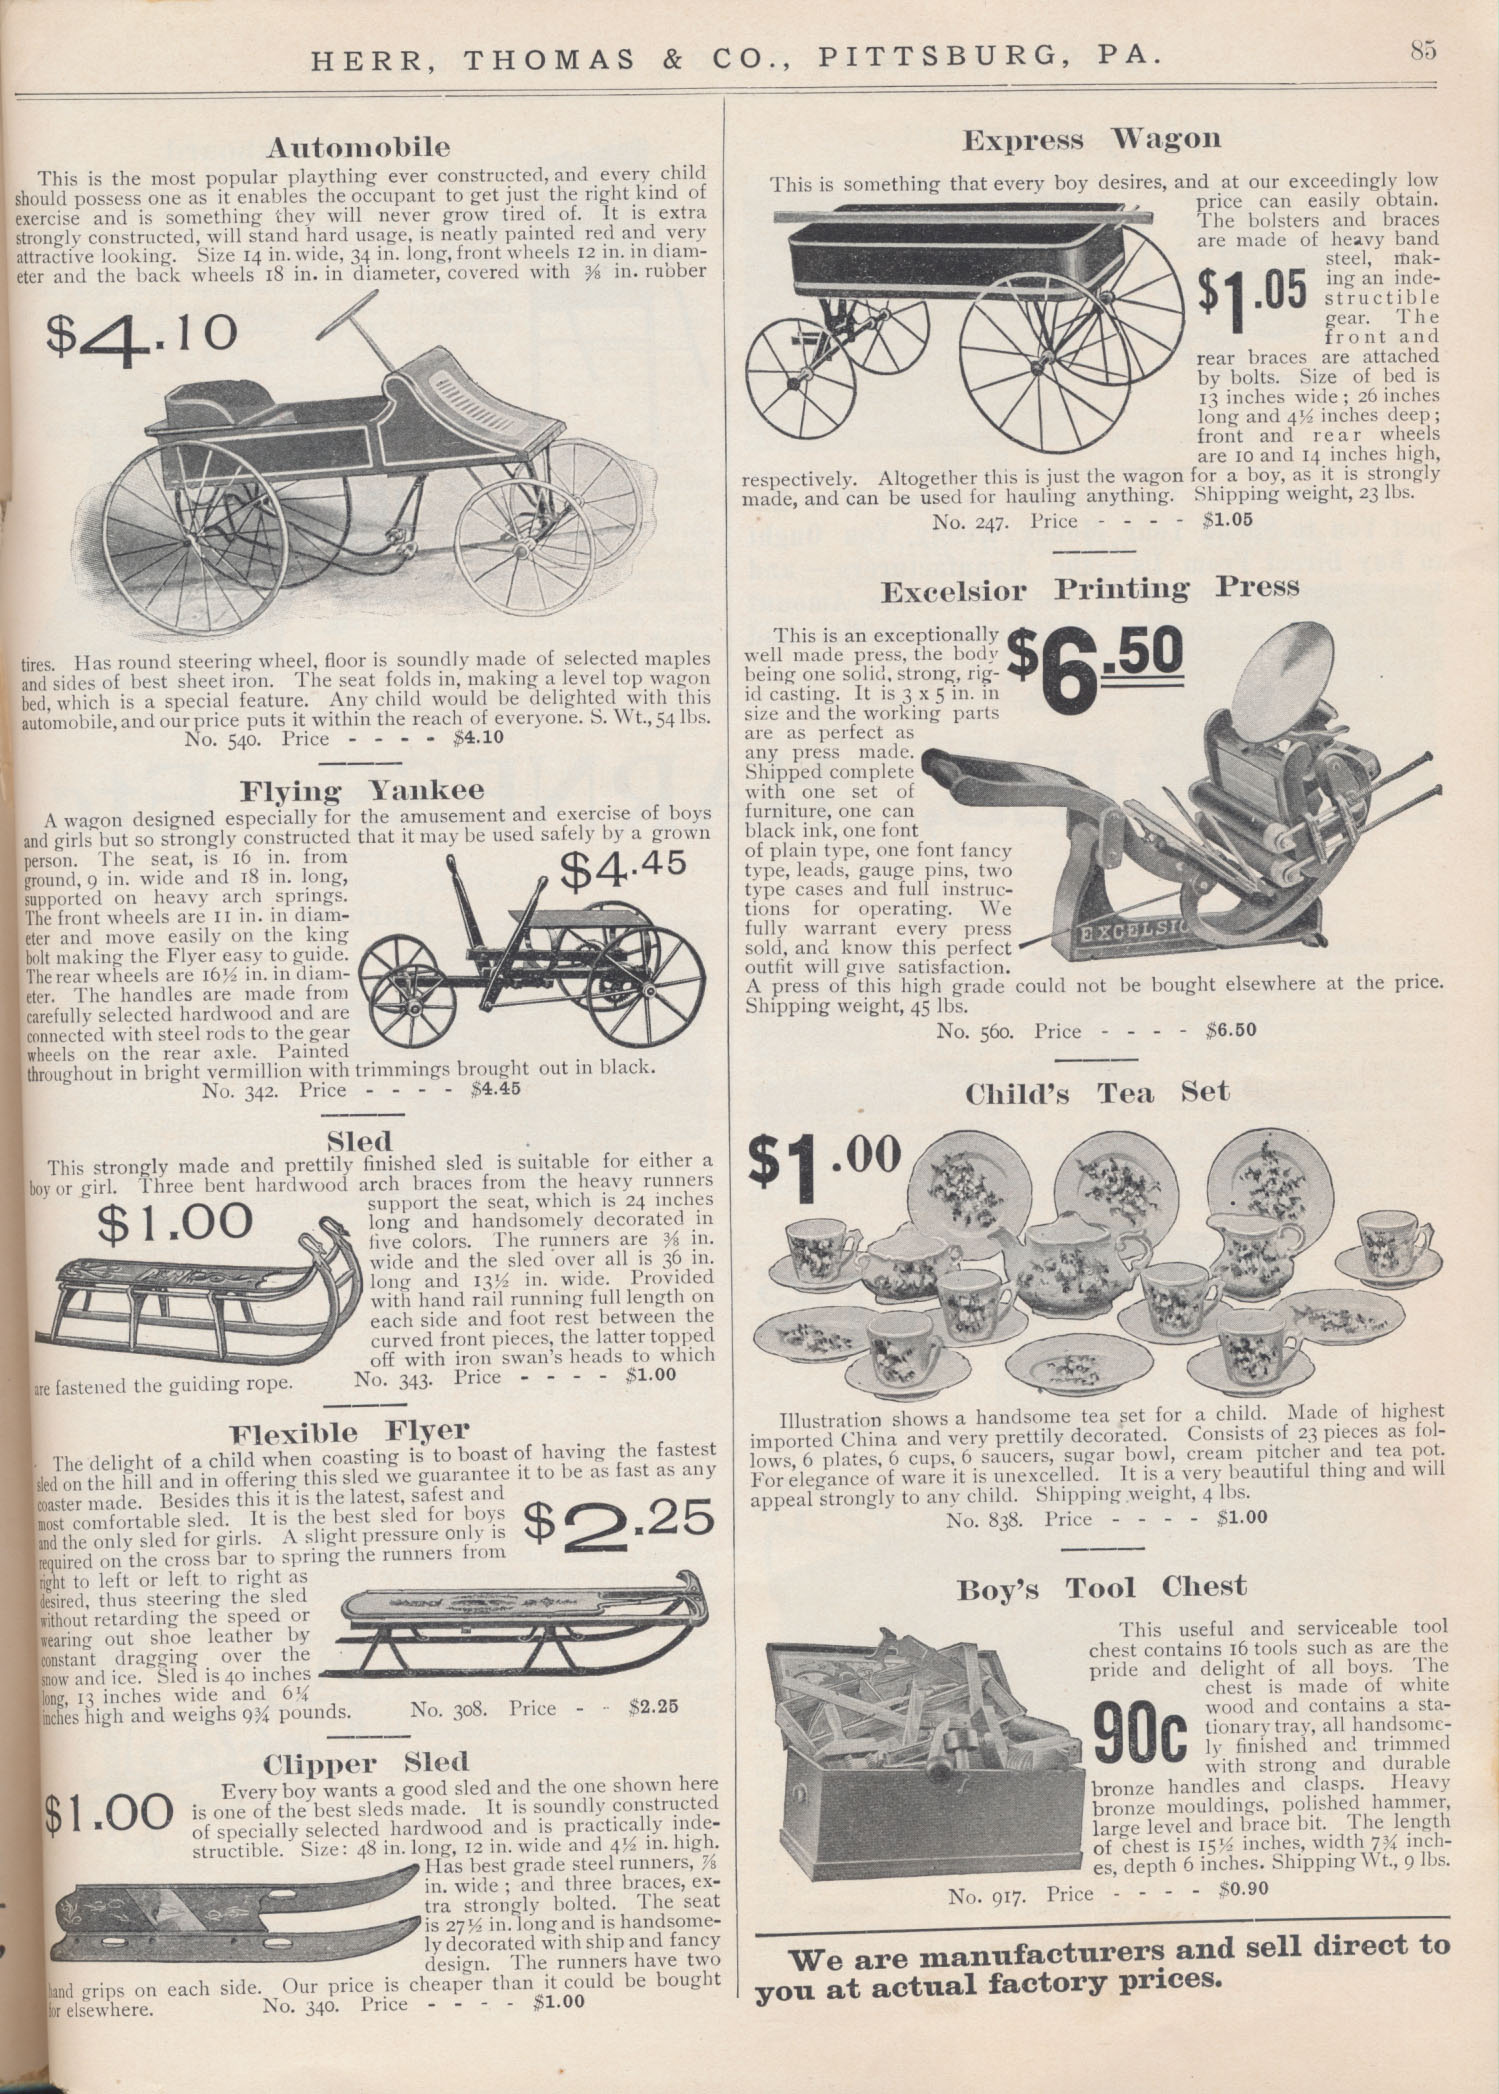 """Child's """"automobile,"""" wagons, sleds, printing press, child's tea set, and boy's tool chest"""